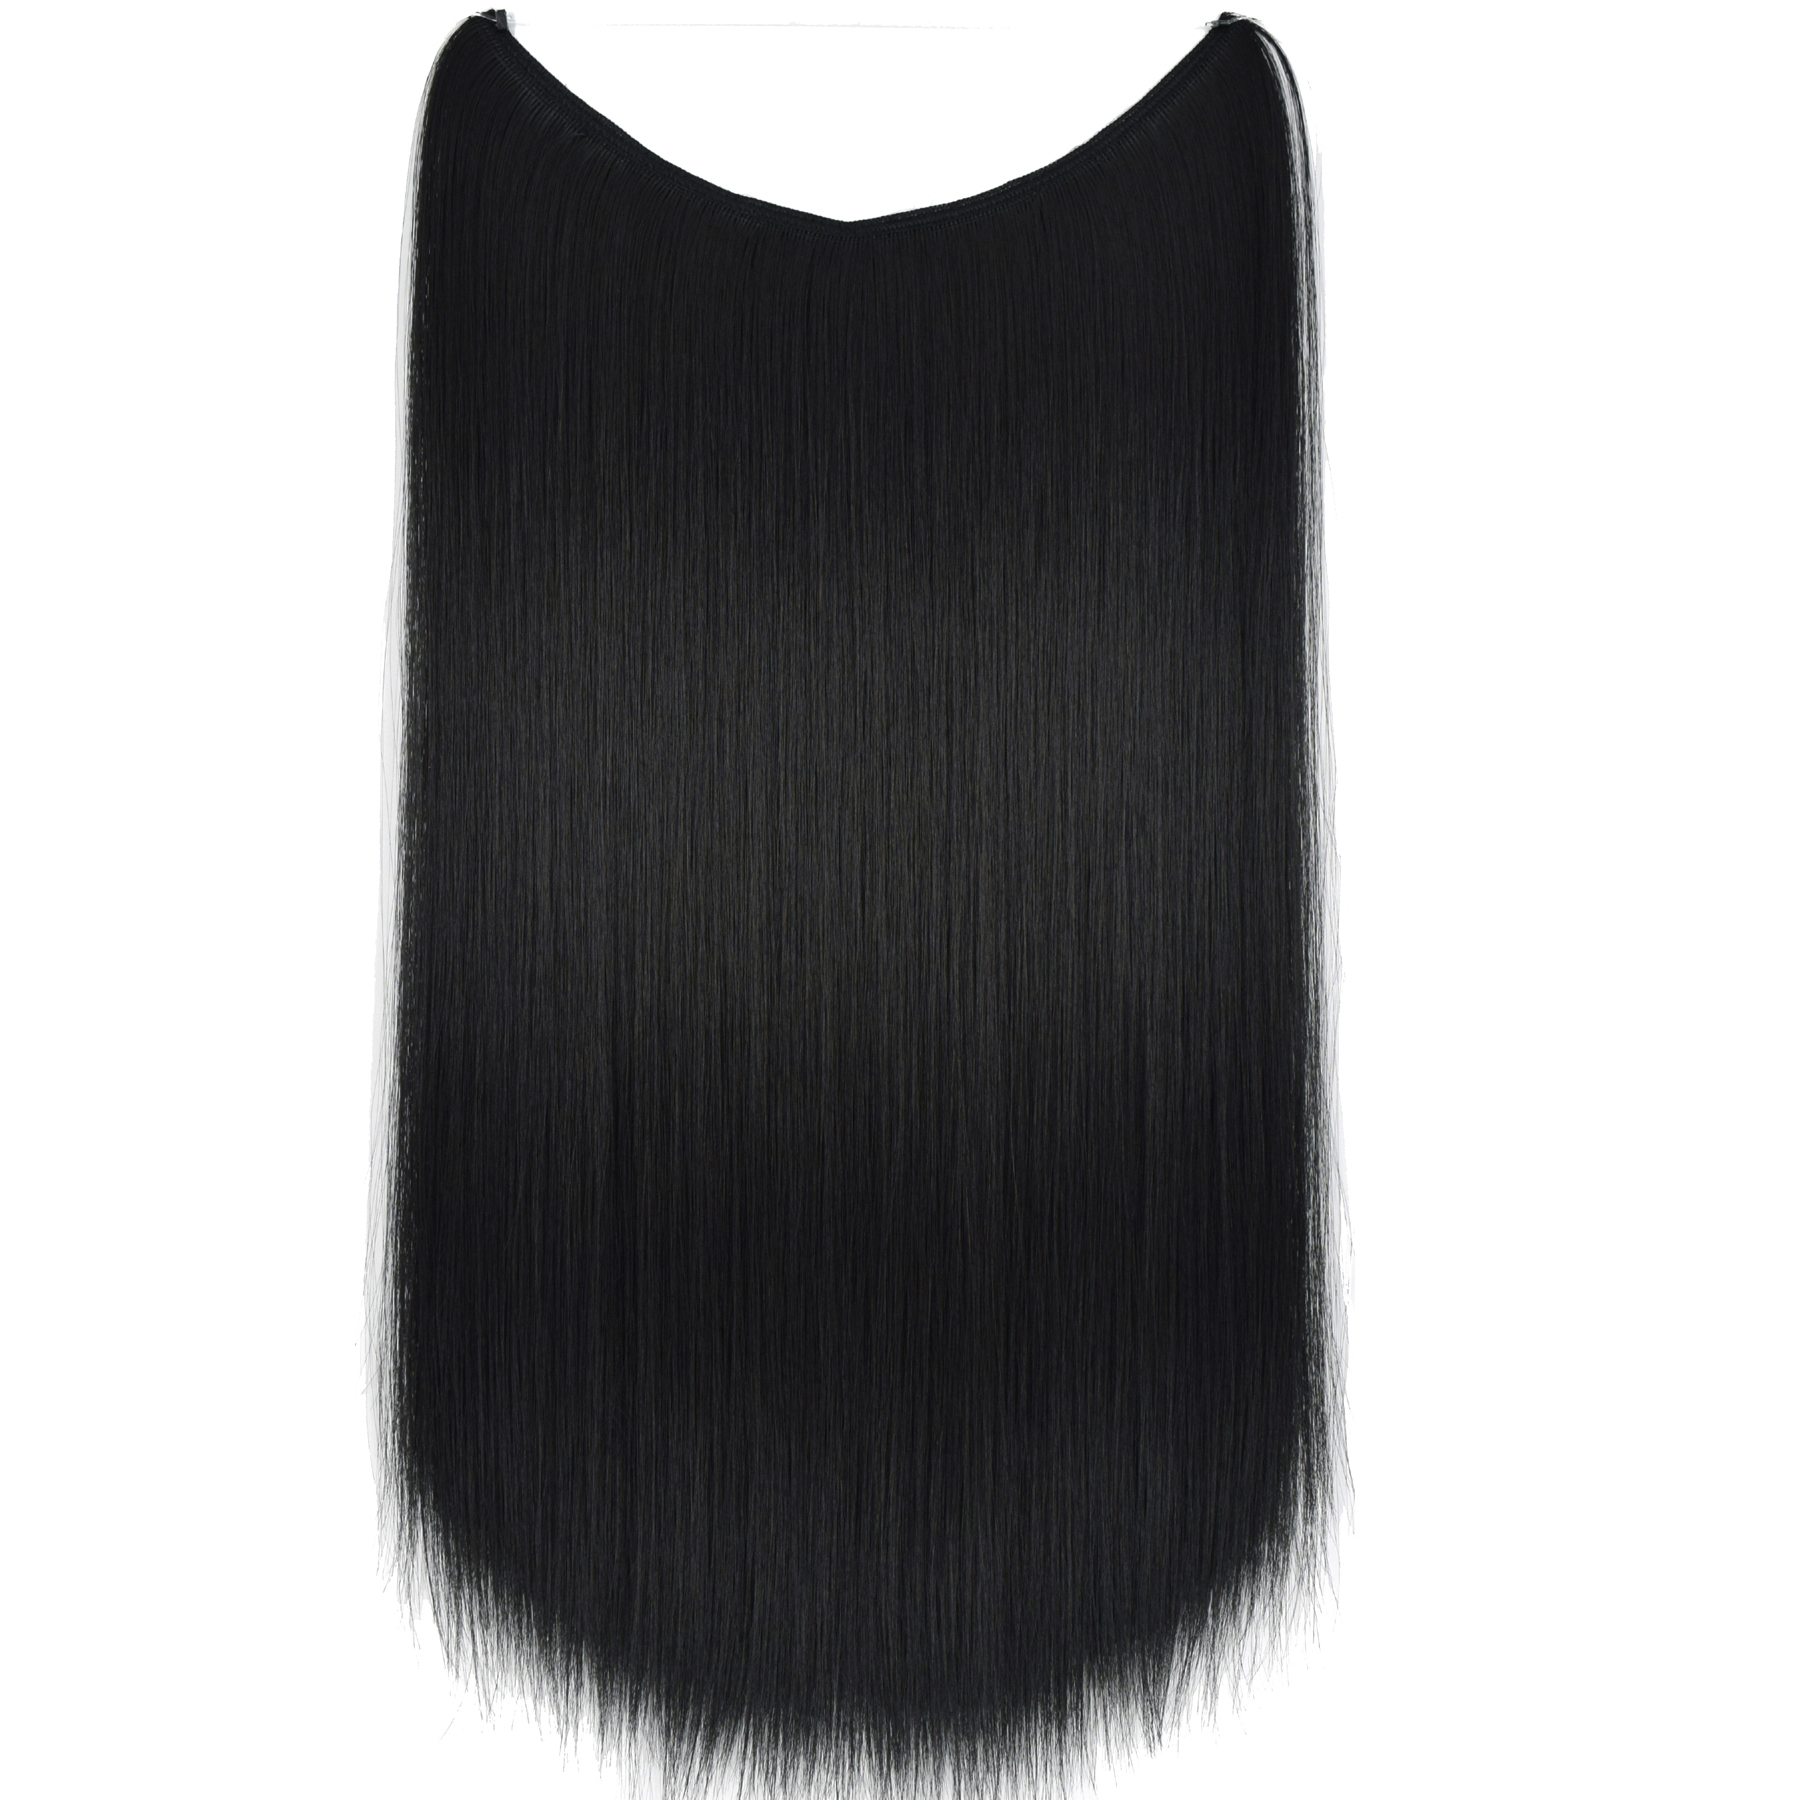 TOPREETY Heat Resistant B5 Synthetic Hair Straight Elasticity Invisible Wire Halo Hair Extensions 8106